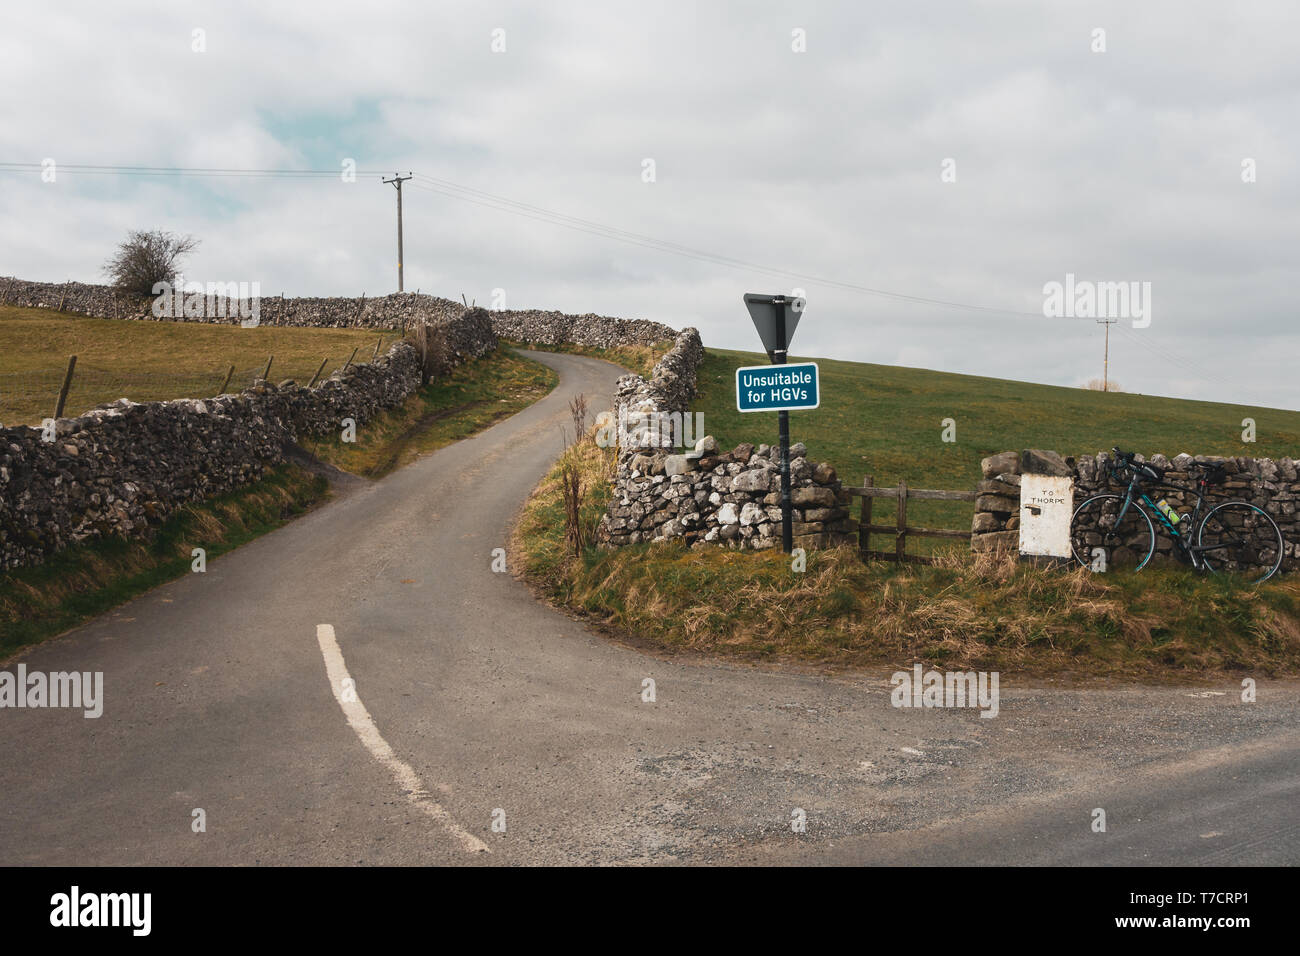 Steep narrow country lane with a quirky signpost to Thorpe, bicycle and unsuitable for HGVs signpost, Yorkshire Dales, UK - Stock Image